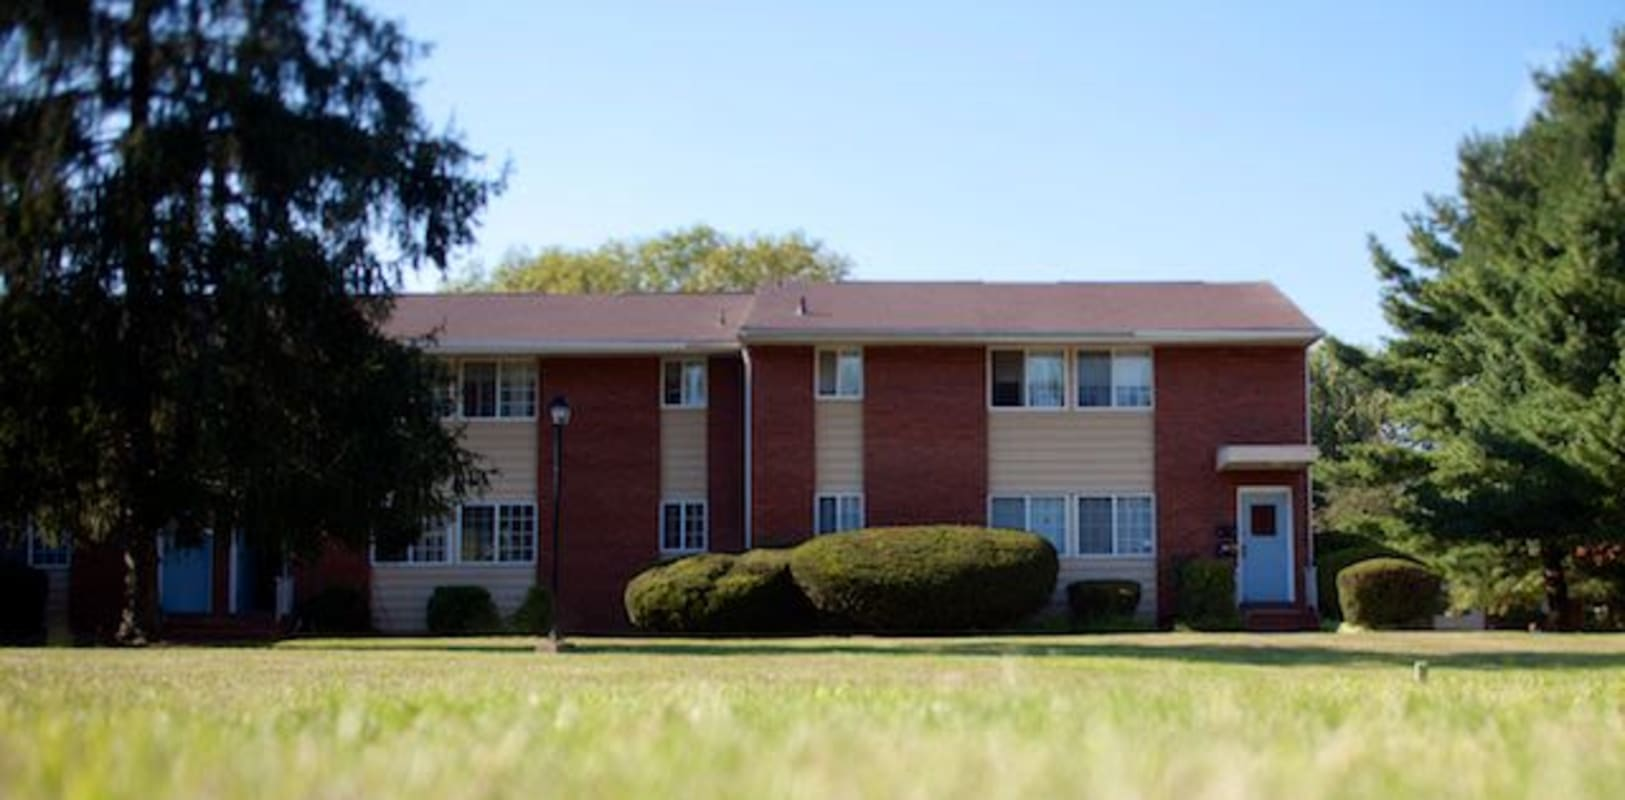 Exterior of Eastgate Apartments in Ewing, New Jersey